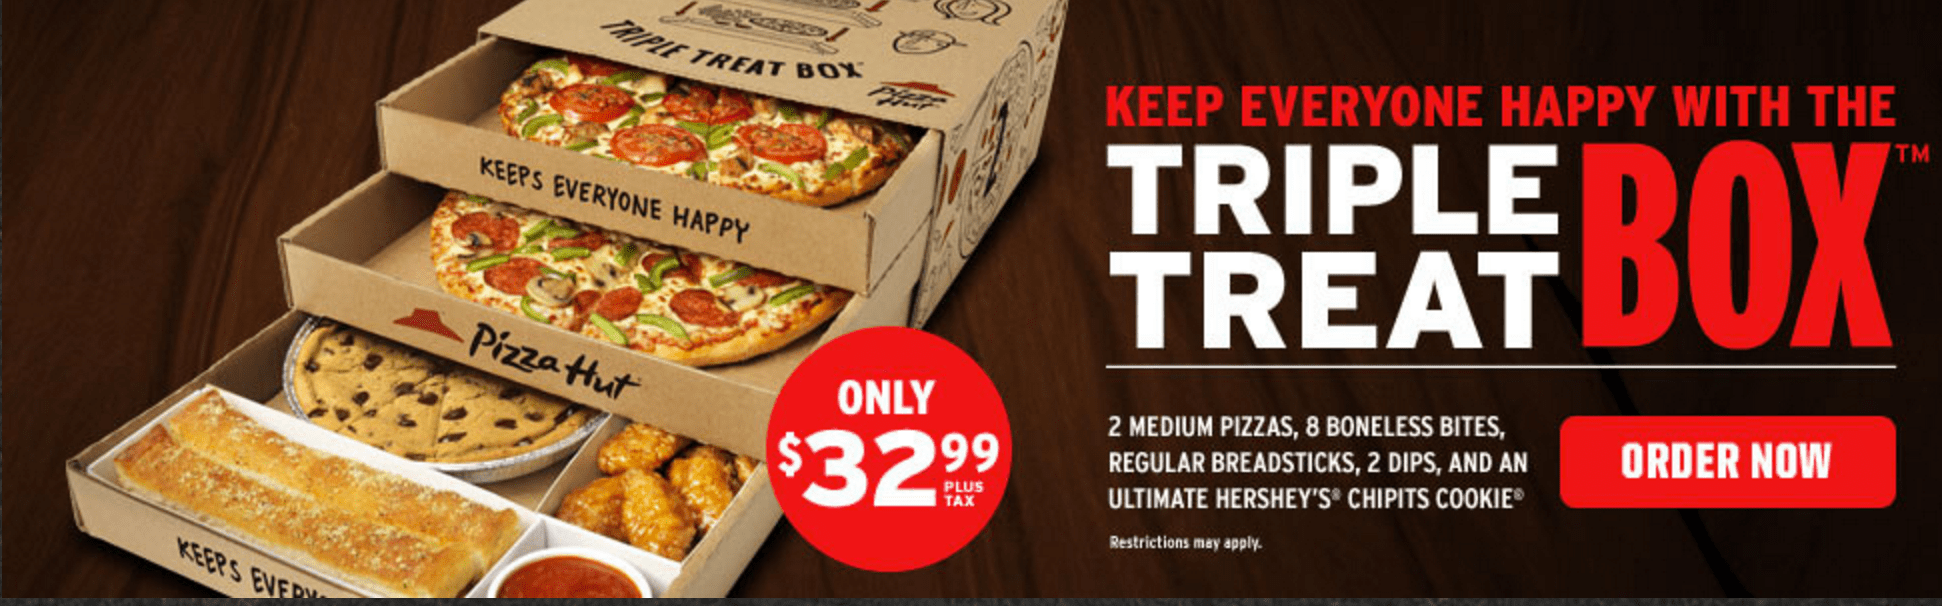 Hot box pizza coupon code